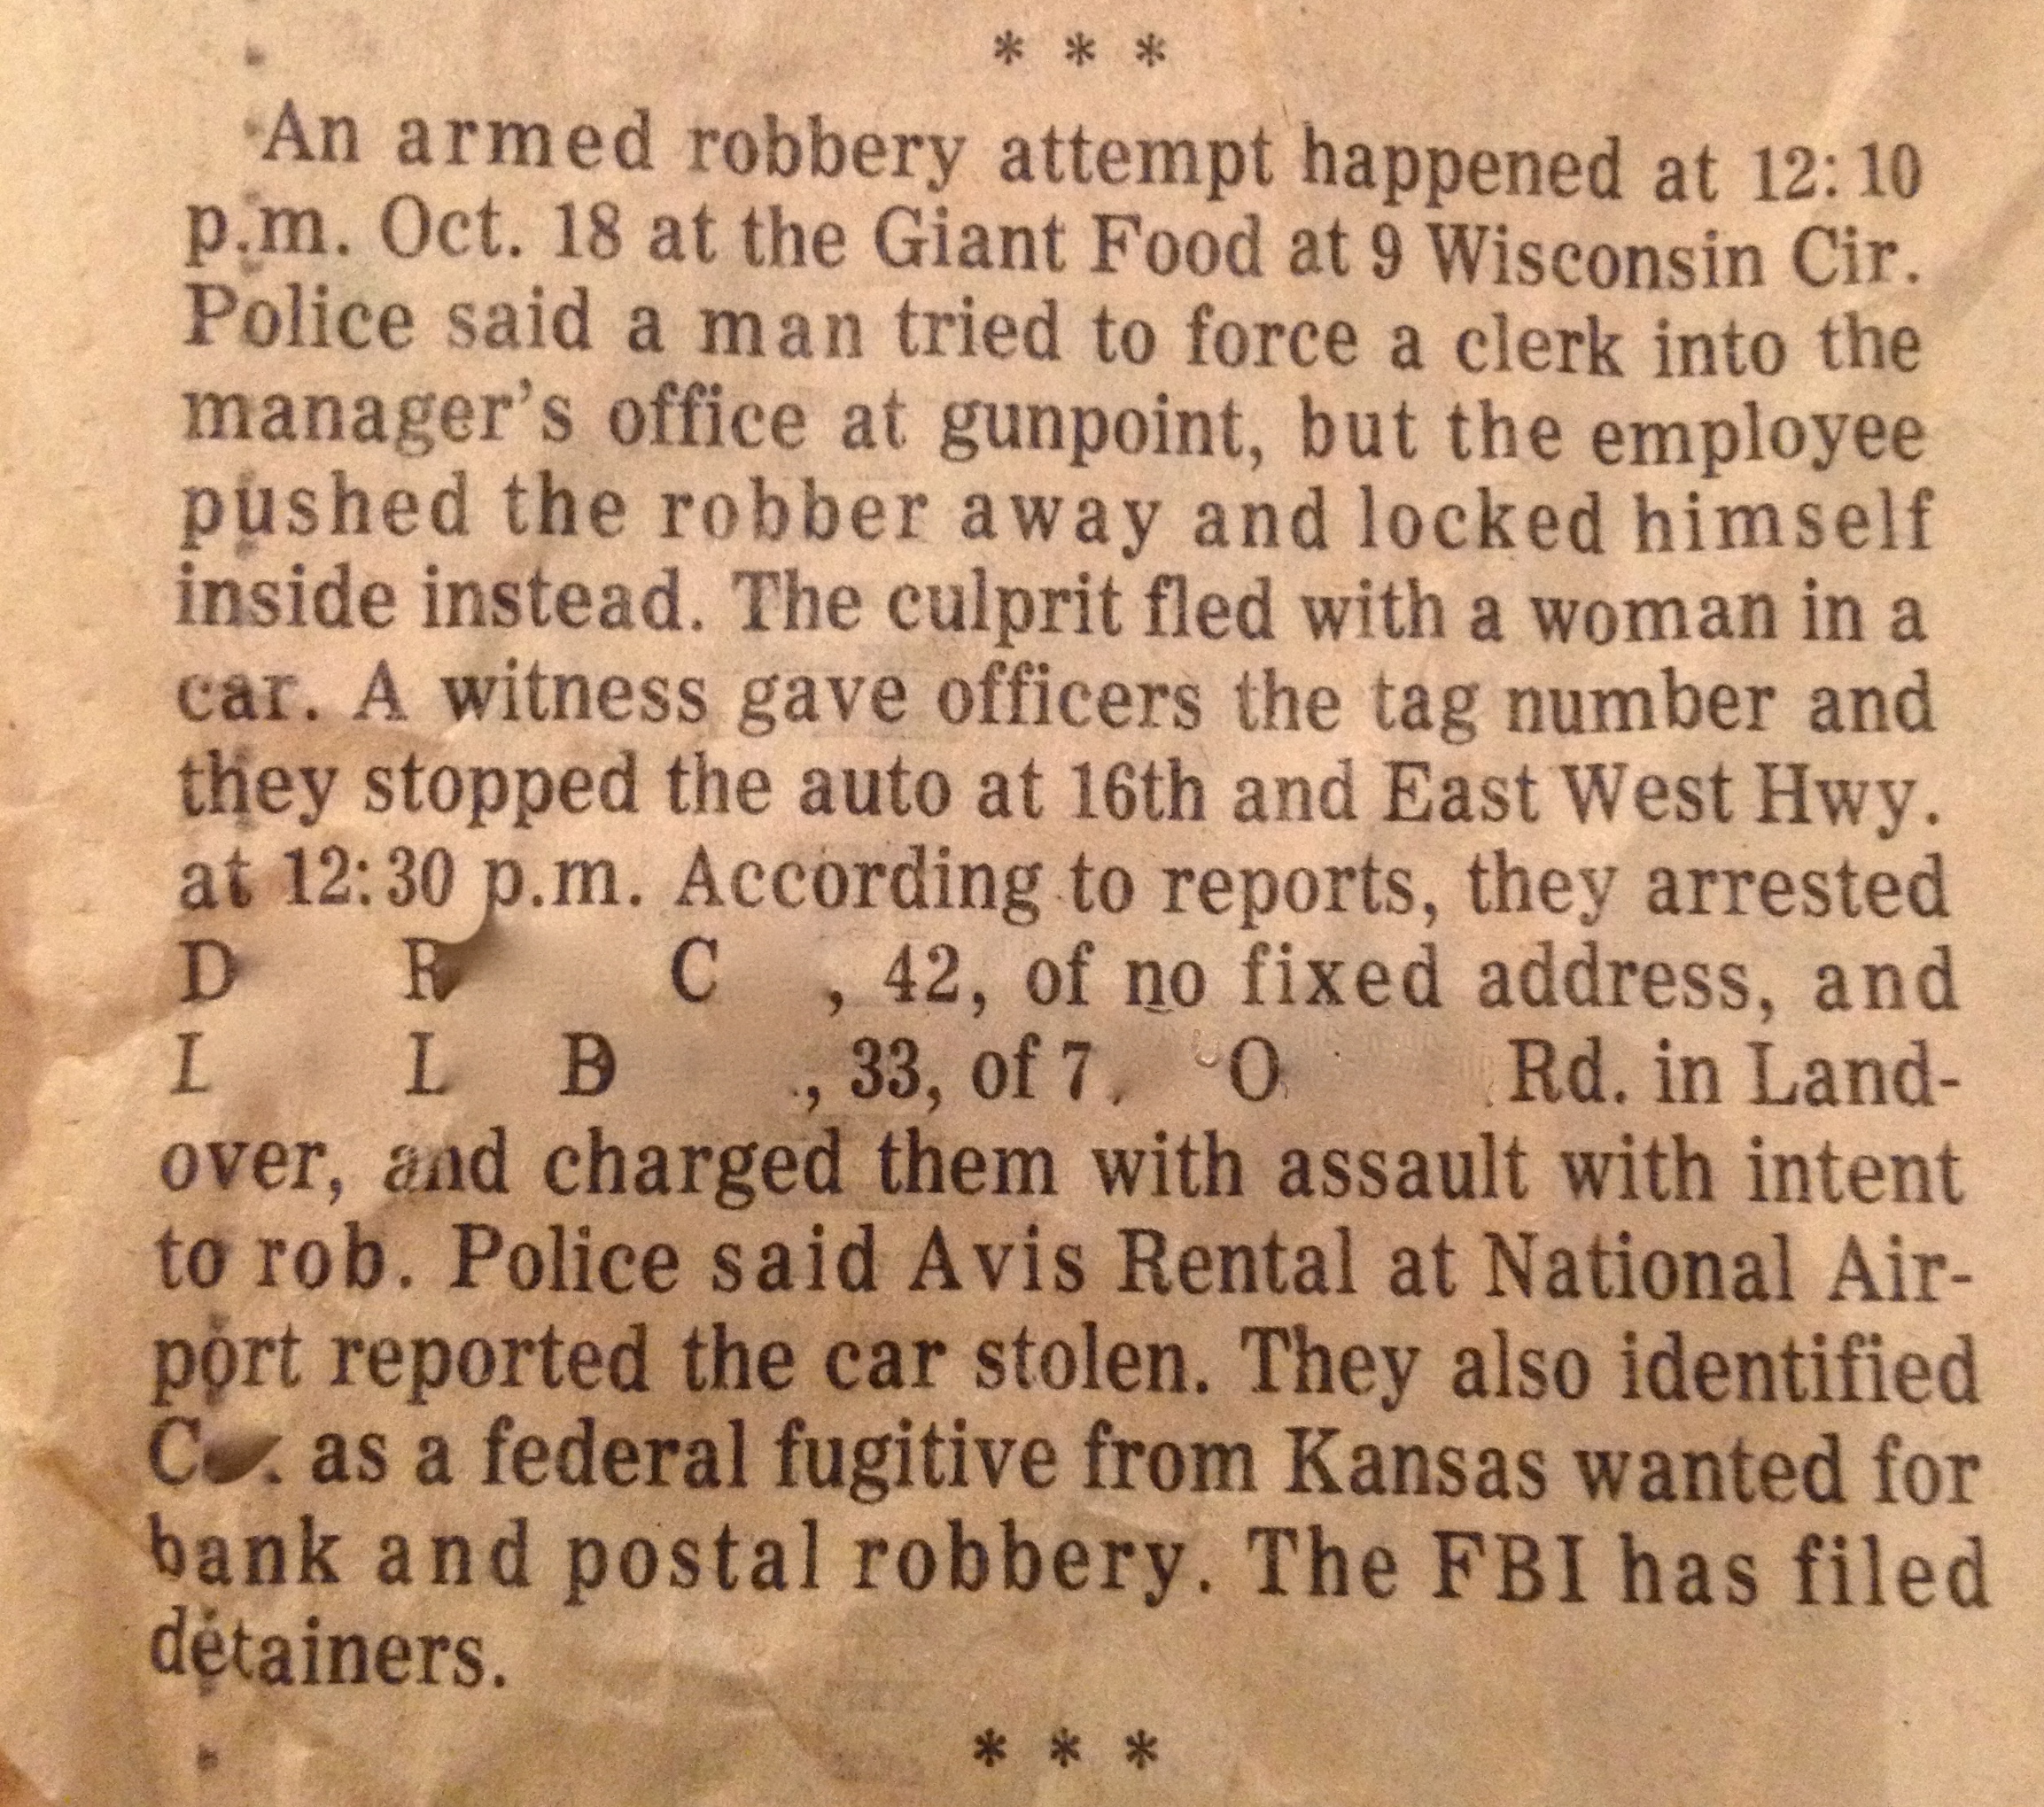 Crime report in paper.  Saturday, October 18, 2012